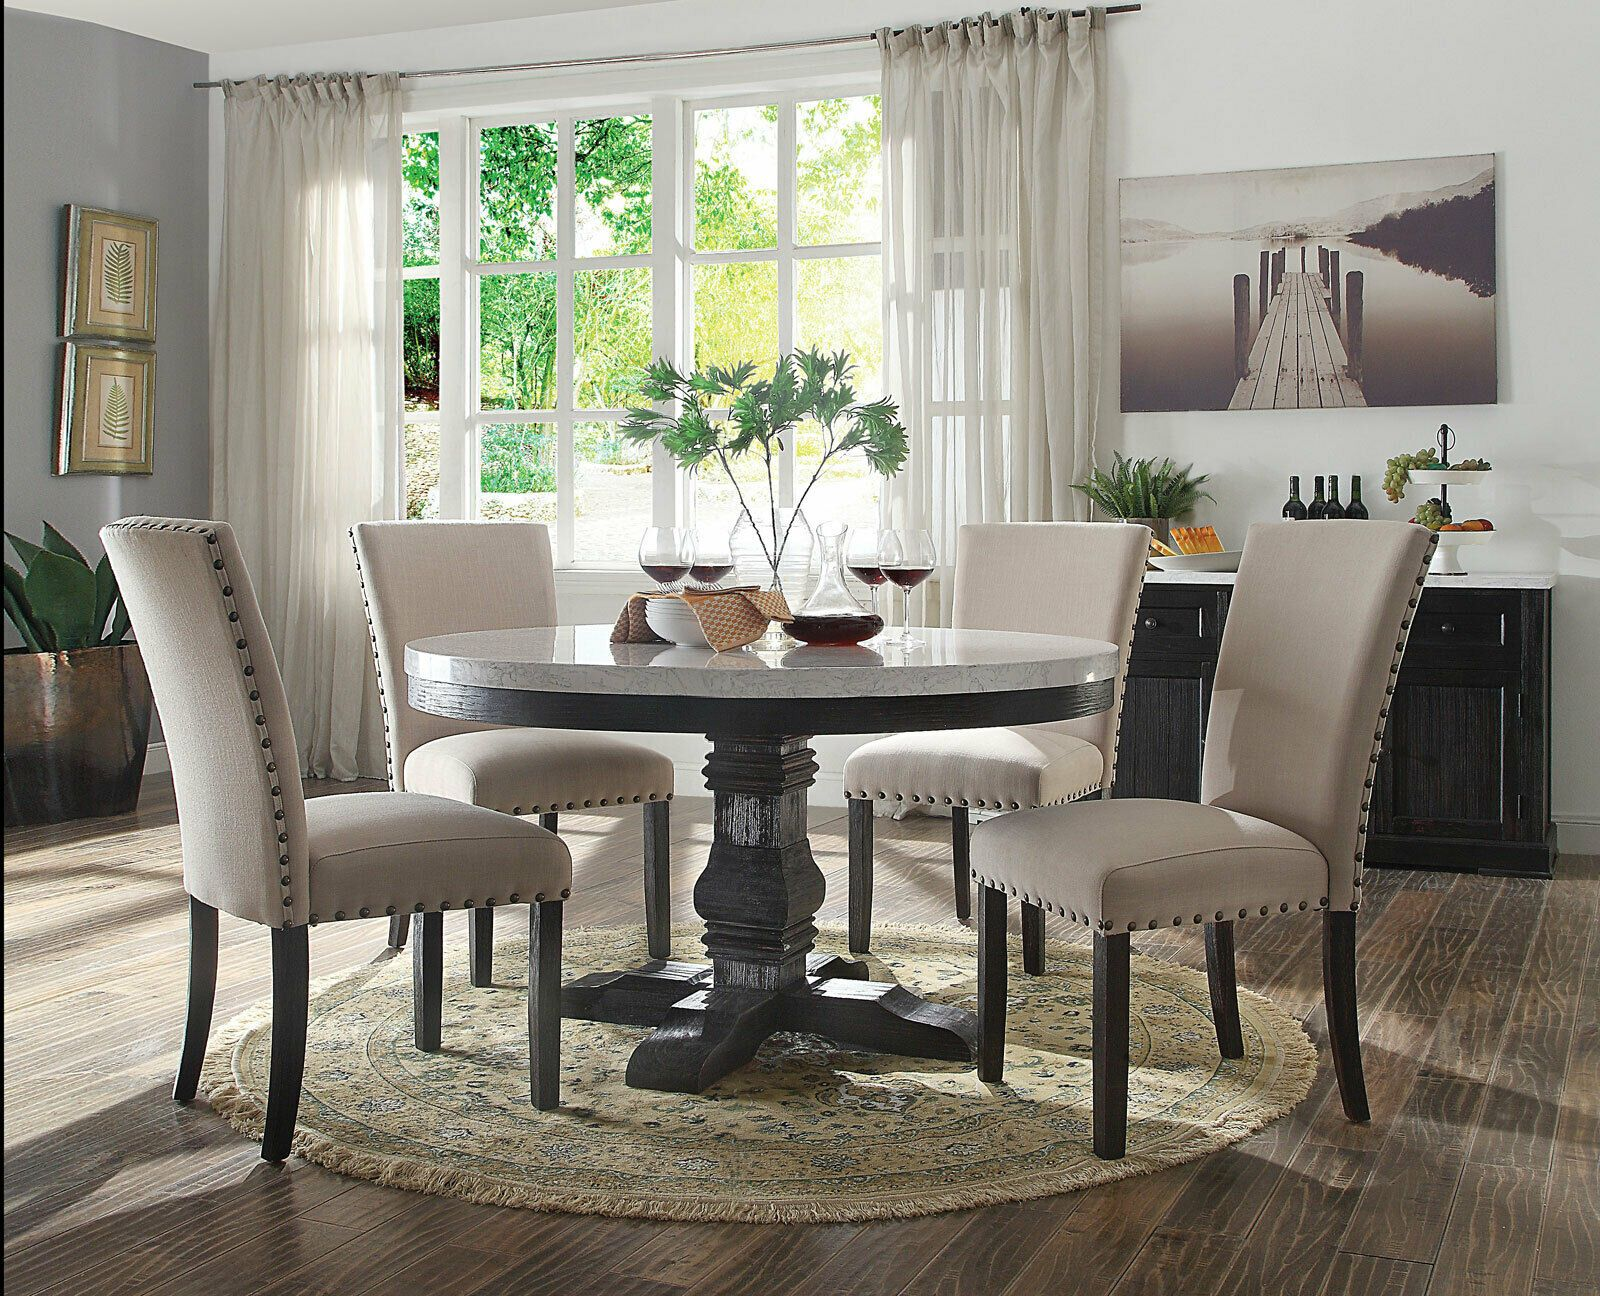 Details About Gisela 5 Pieces Modern Dining Room Set Round White Marble Table Beige Chairs Round Dining Table Sets Side Chairs Dining Luxury Dining Room